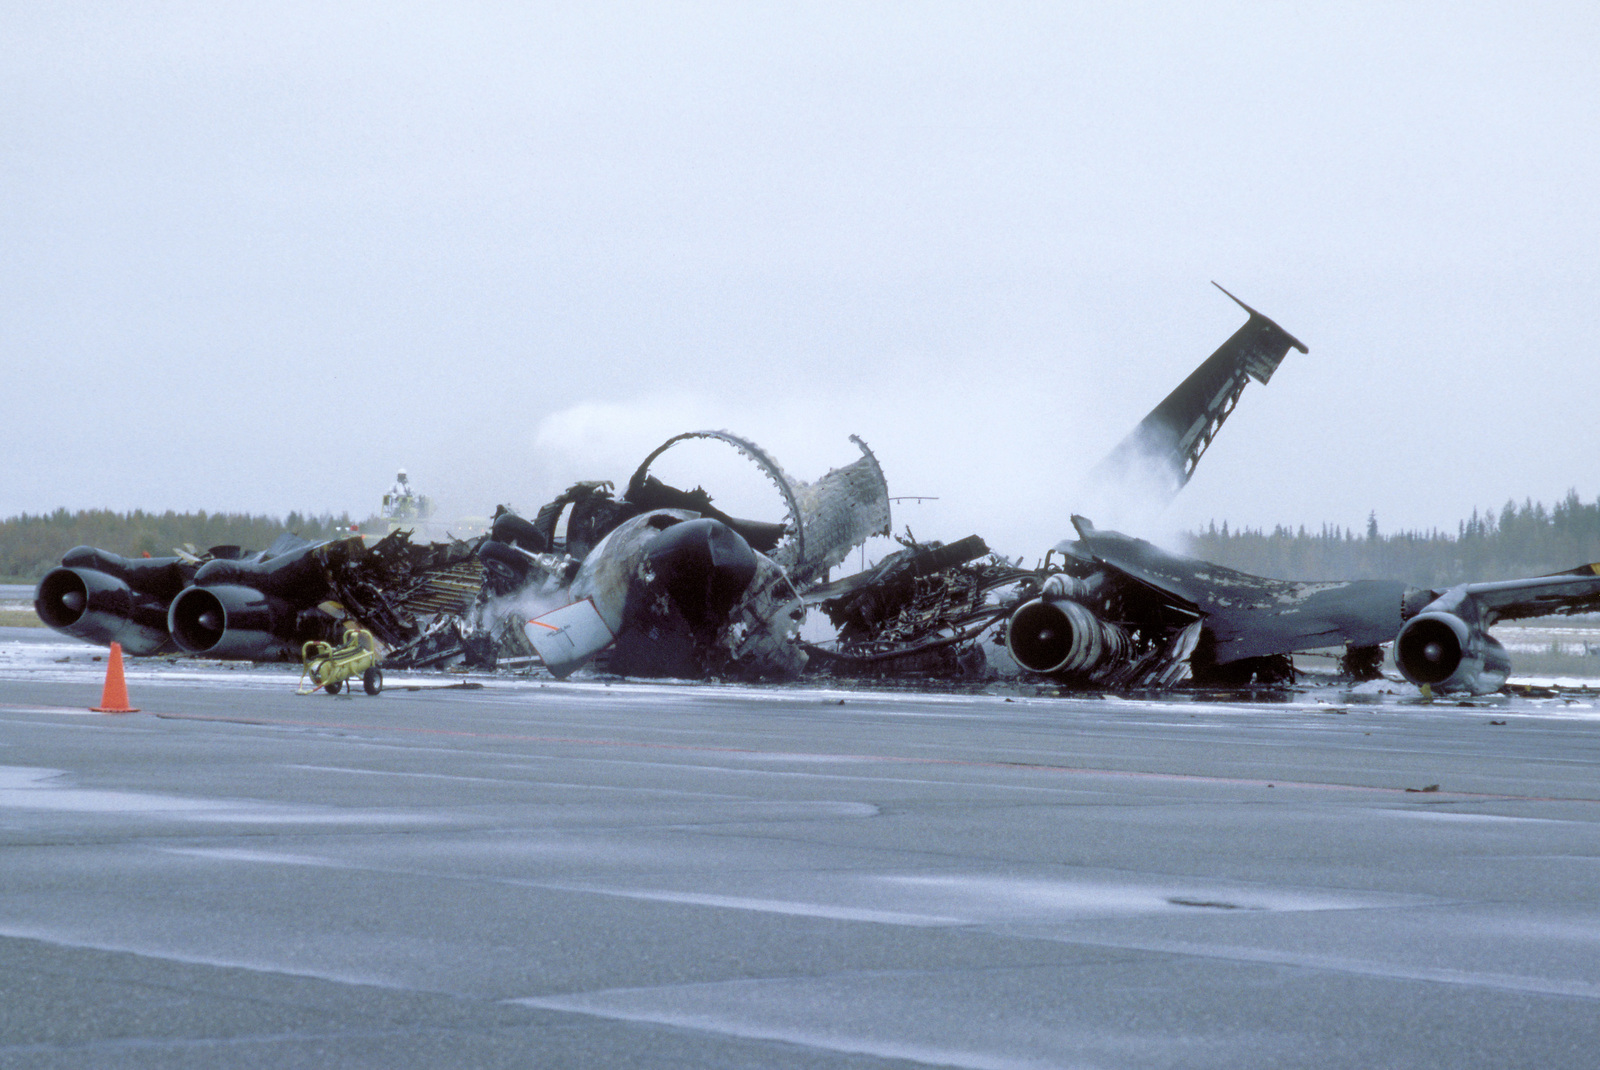 Crash crewmen spray a foam/water agent on the remnants of an Alaska Air National Guard KC-135E Stratotanker aircraft that exploded and burned while taxiing to a parking area. Two of the aircraft's seven crewmen were killed; the others sustained only minor injuries